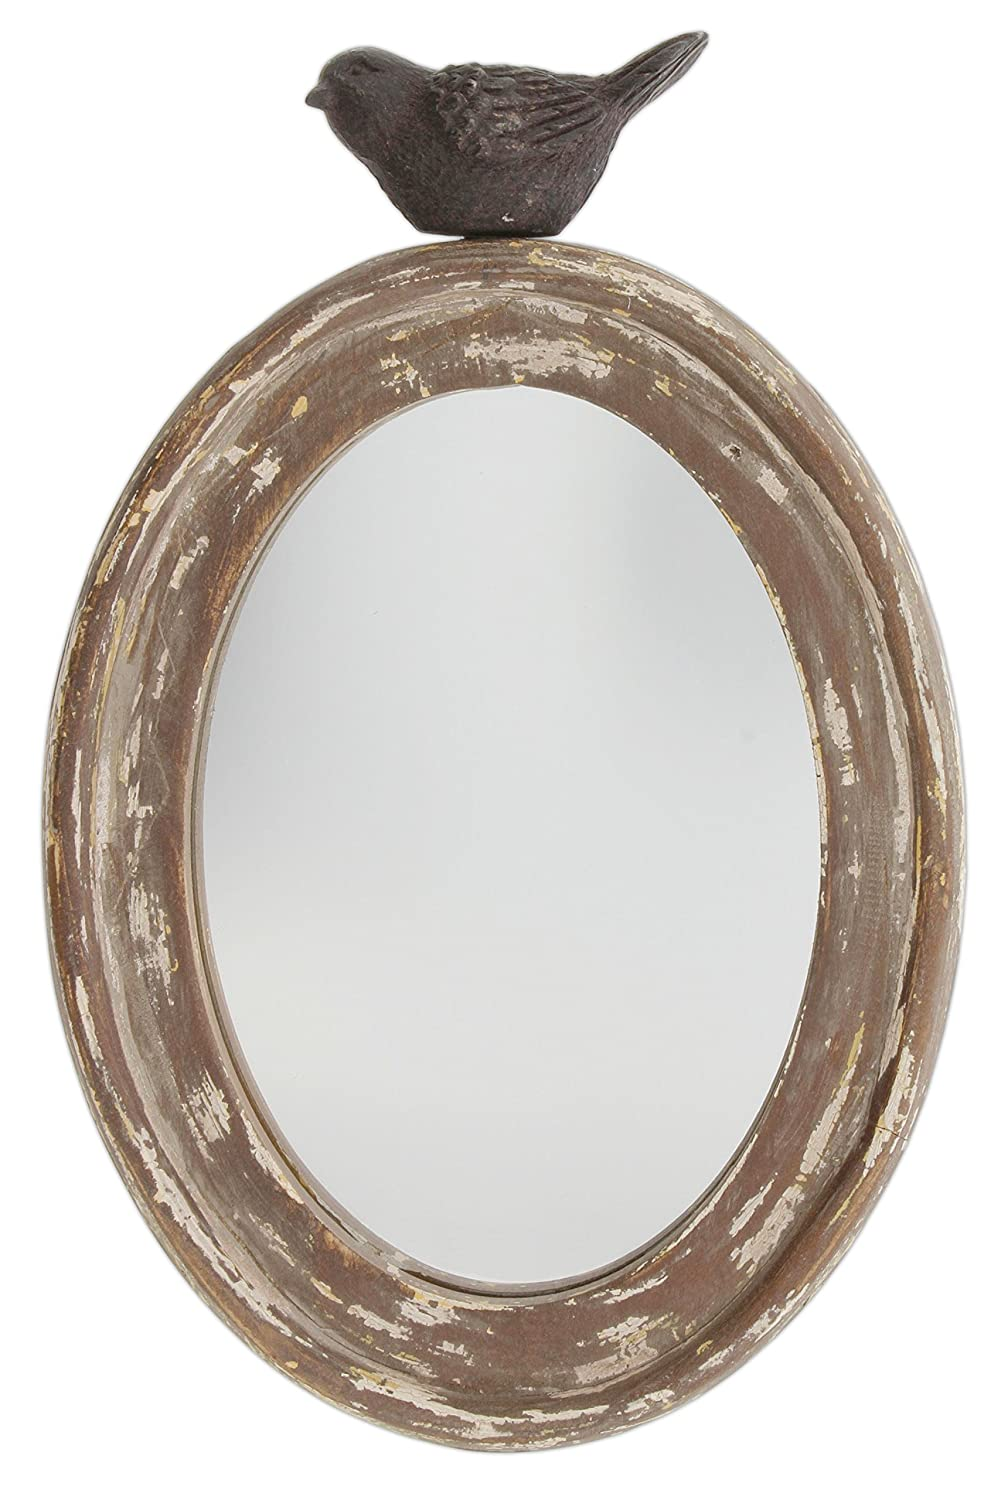 Park Hill 9.5 Distressed Wood Framed Oval Mirror with Bird Topper